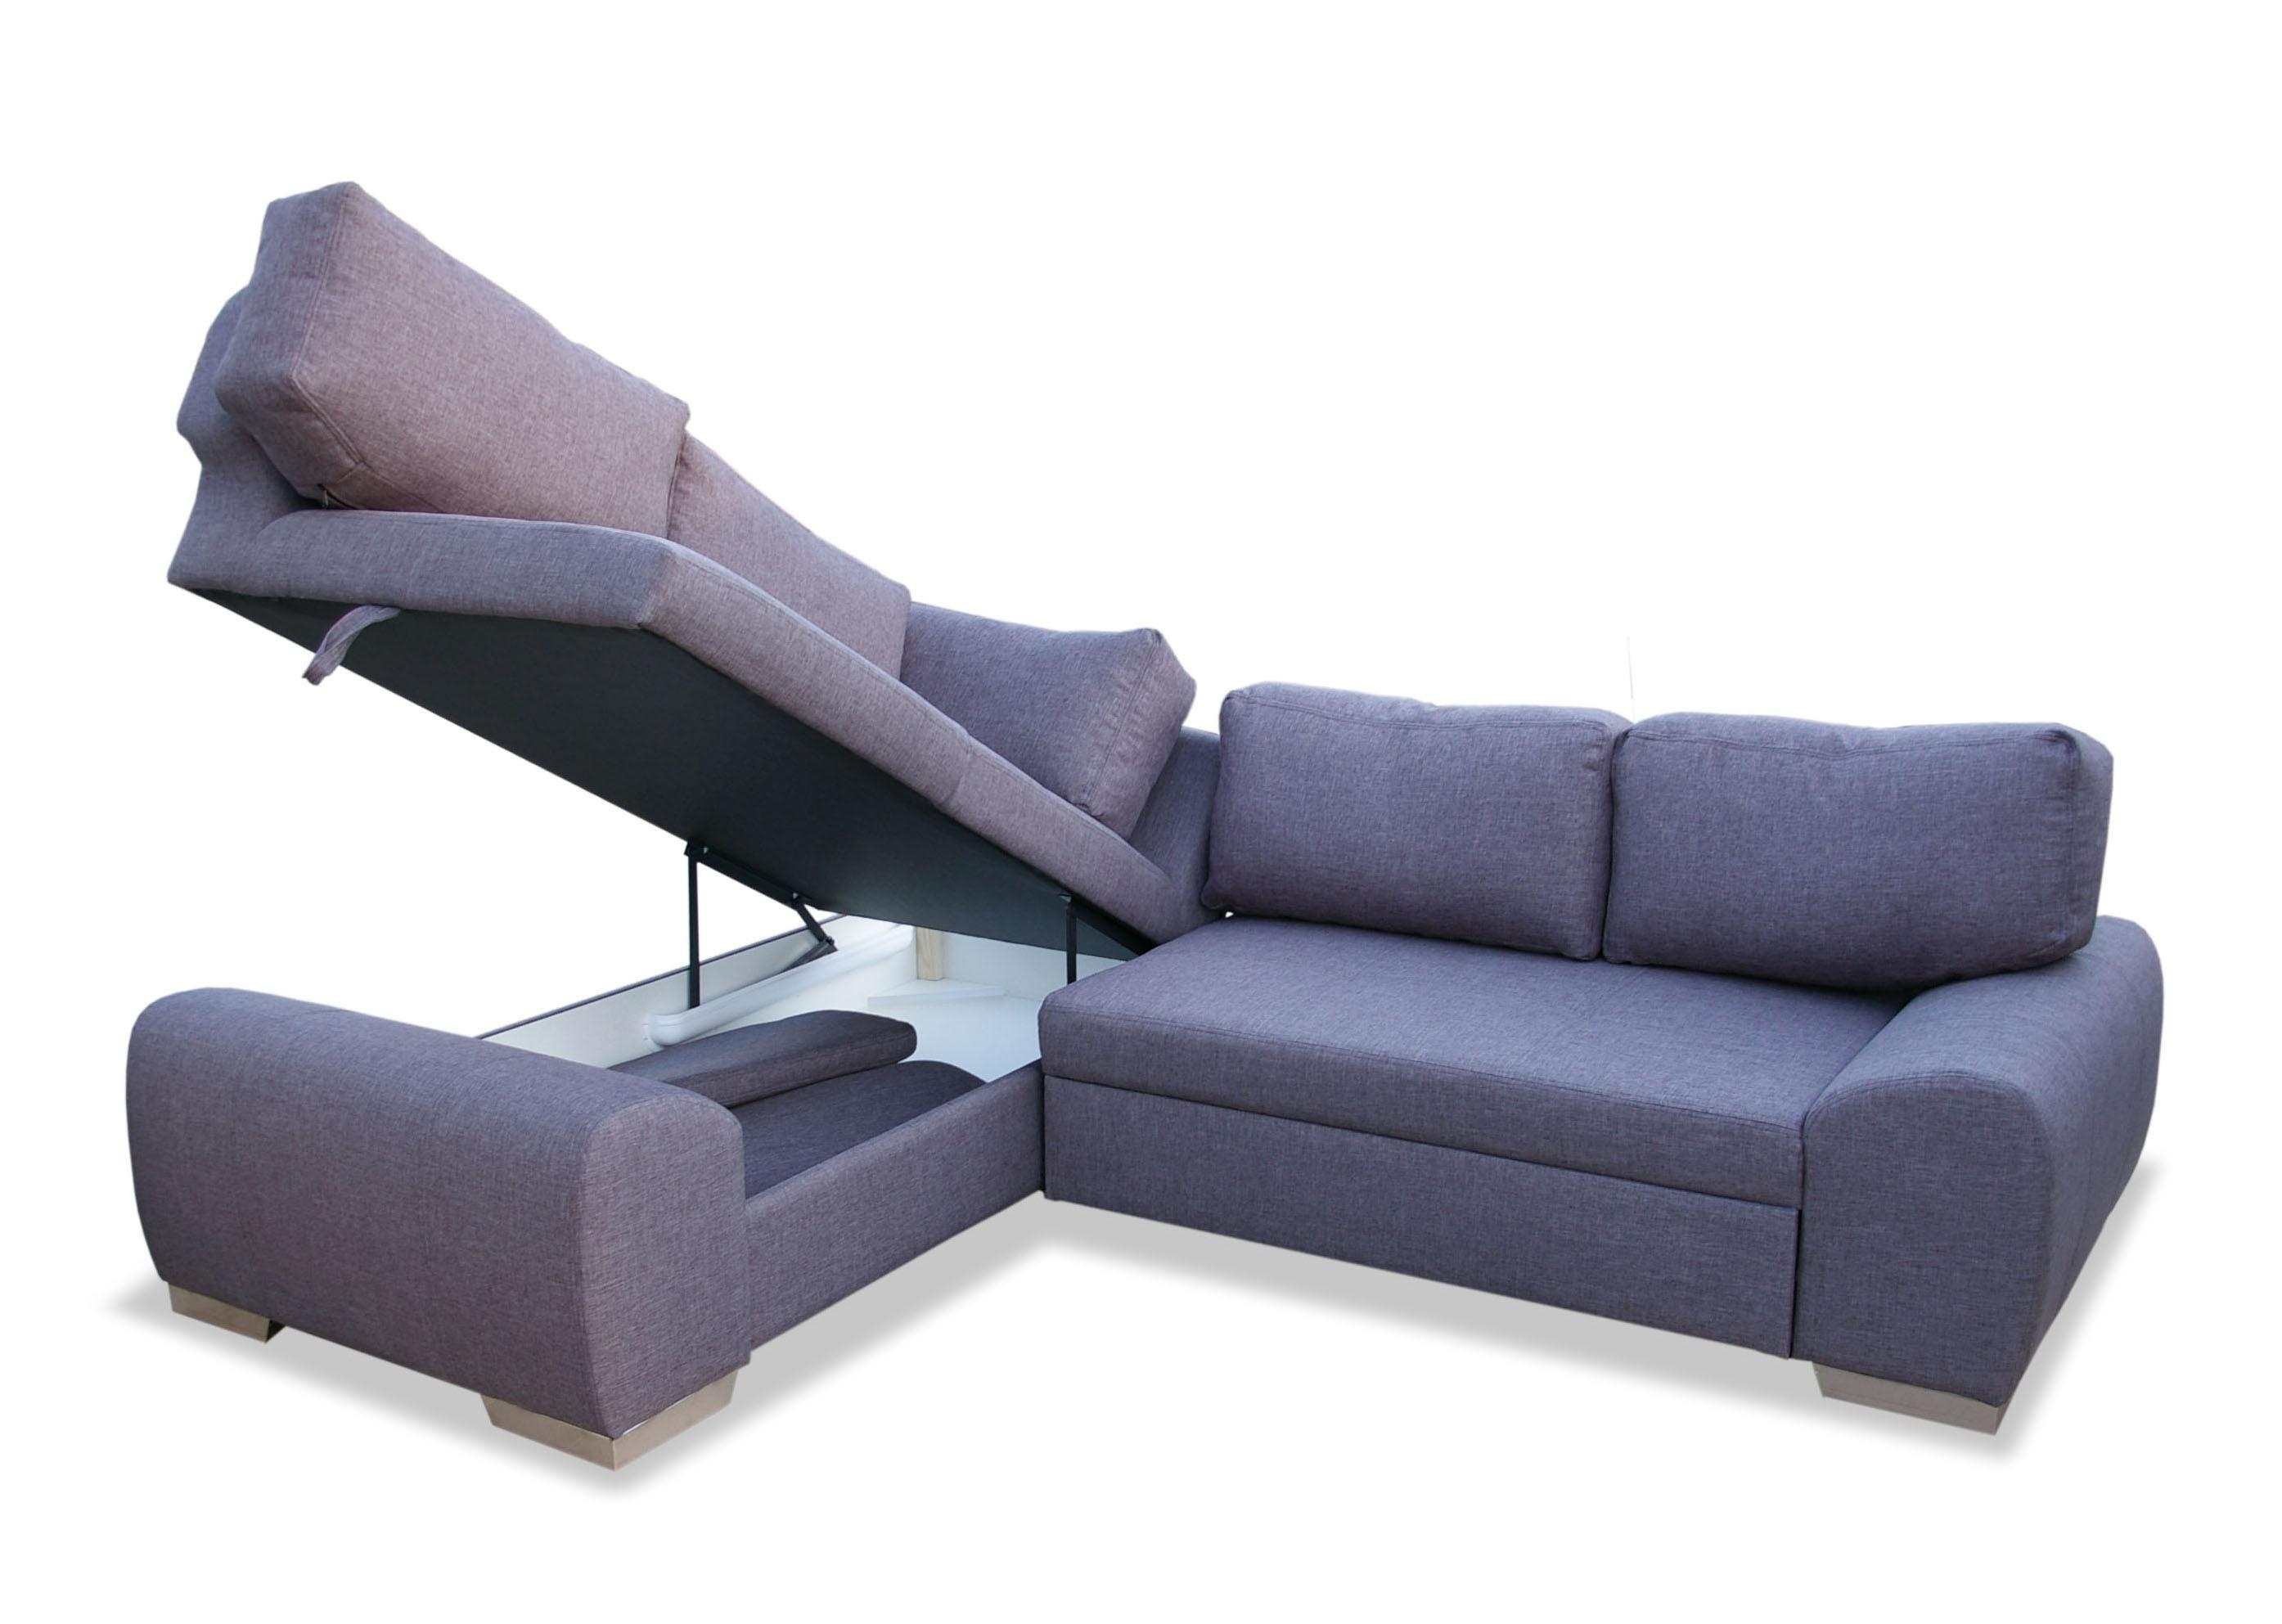 Awesome Strauss Sofa Bed 58 In Minimalist With Strauss Sofa Bed #14749 Intended For Sofas With Beds (View 20 of 22)